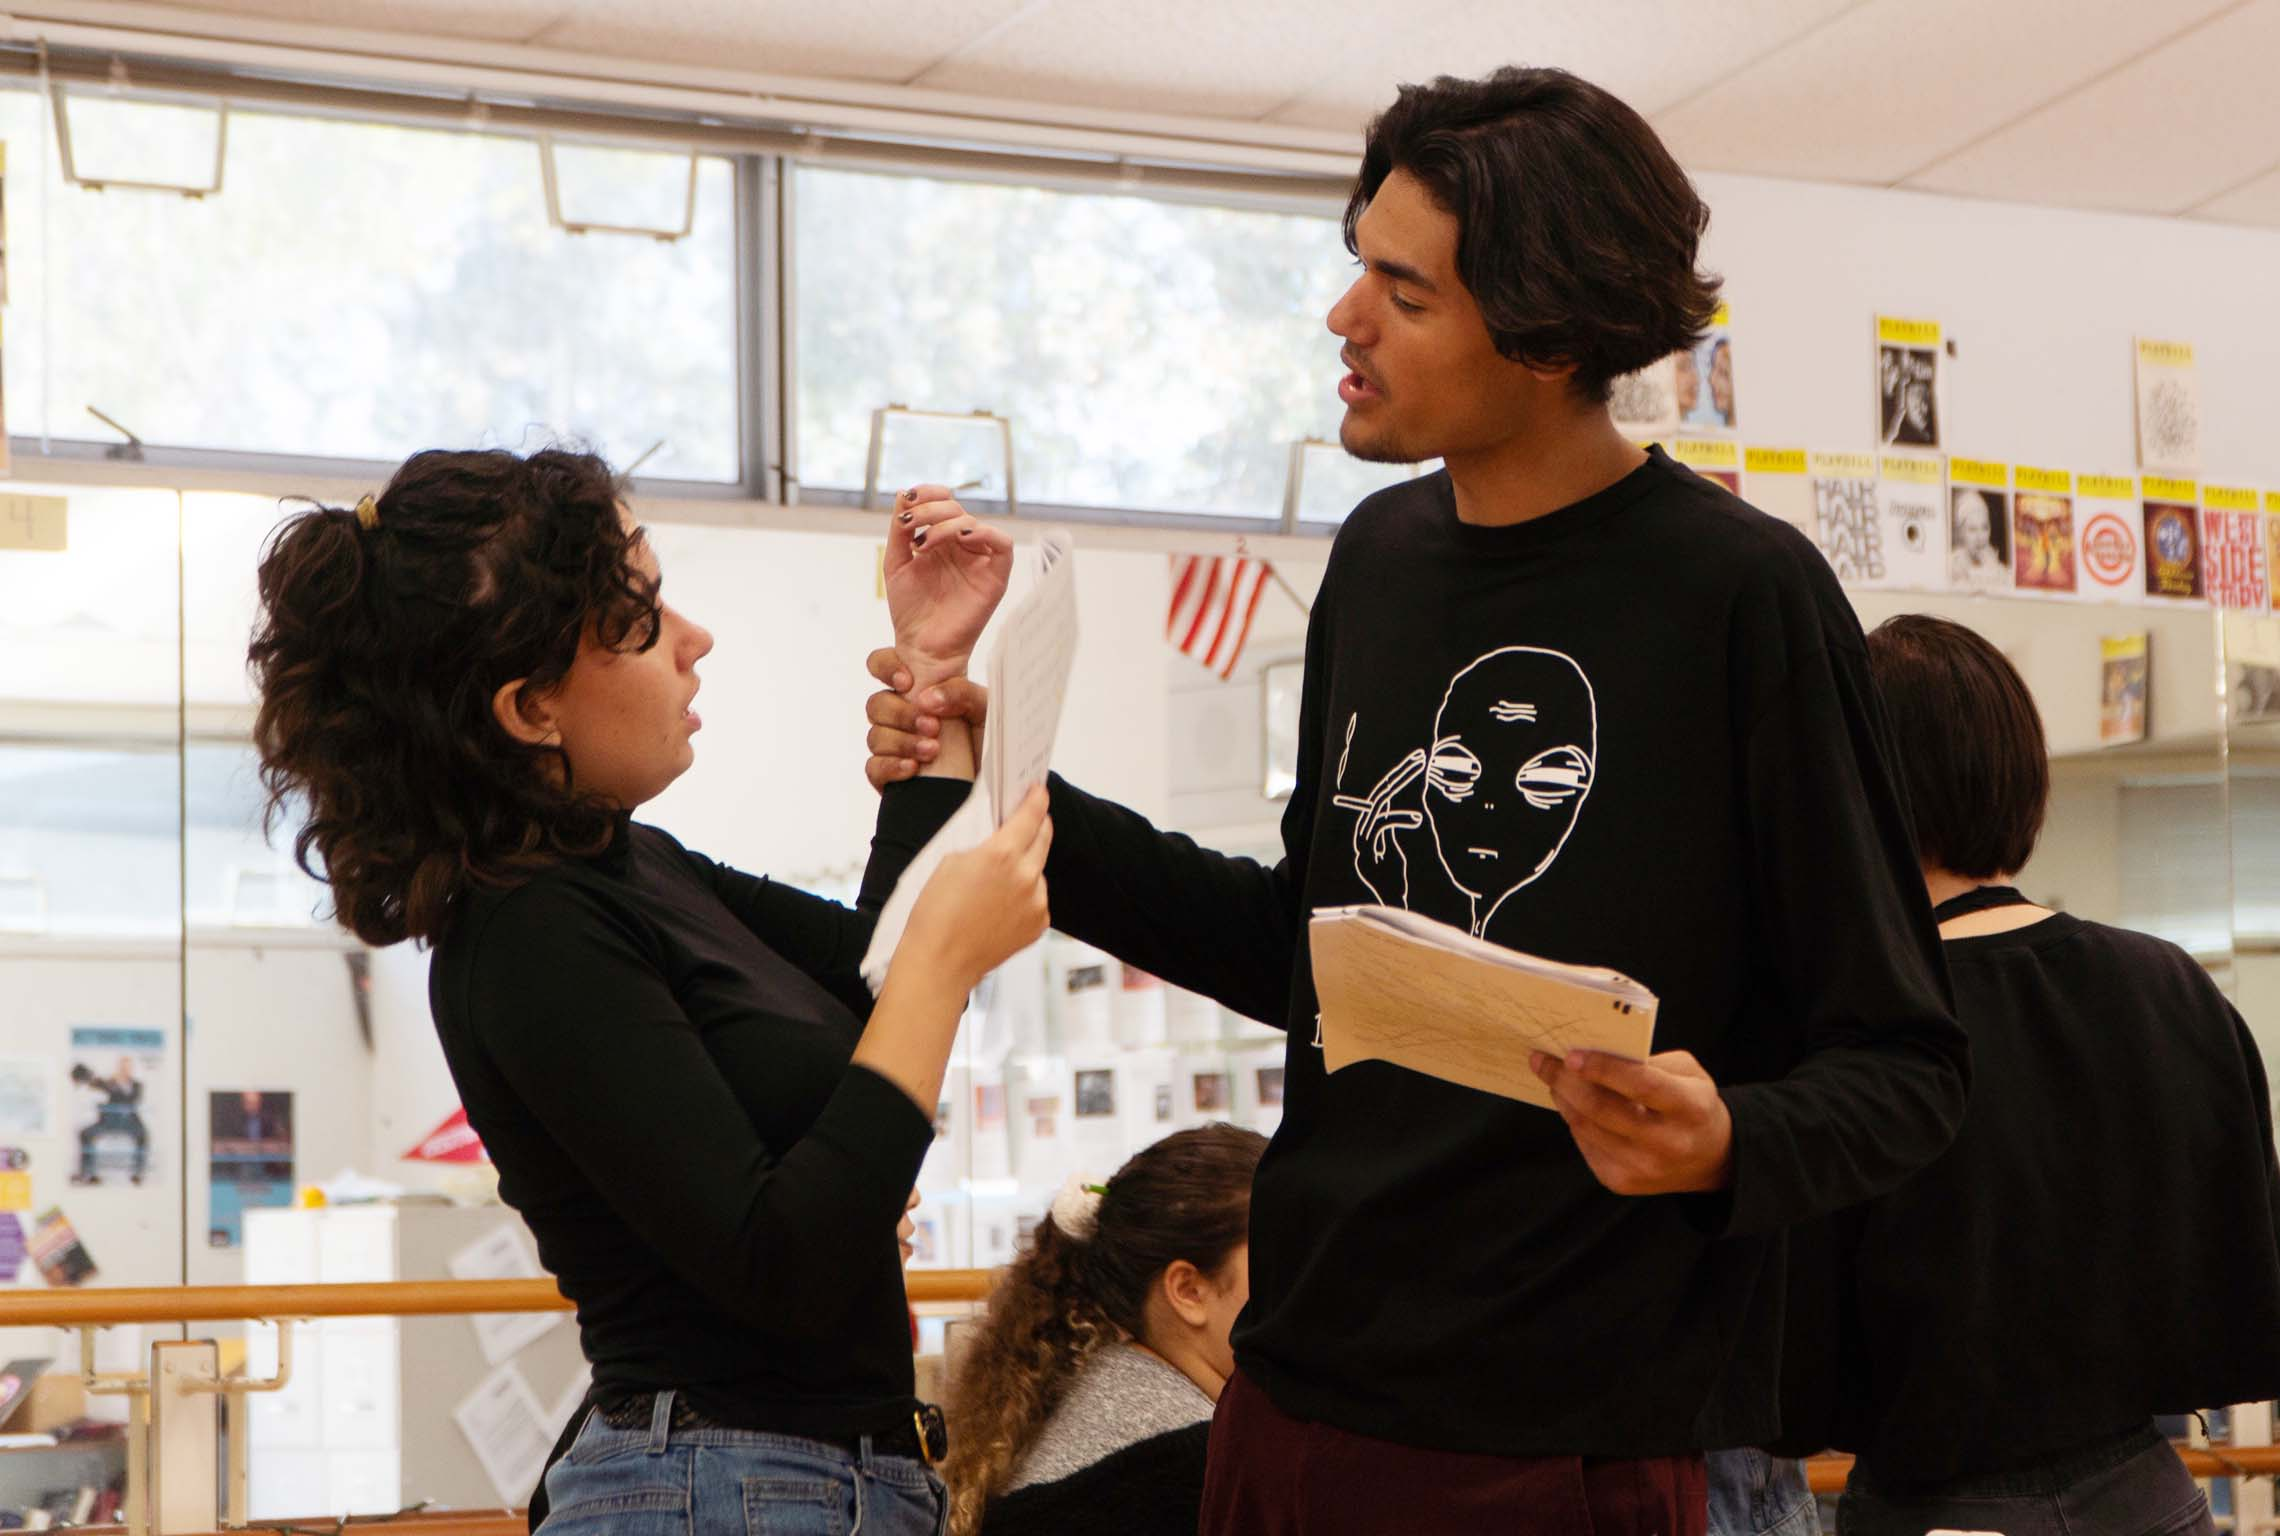 A teenage actor grabs a teenage actress' wrist in a threatening manner while practicing a scene from a play about human trafficking.